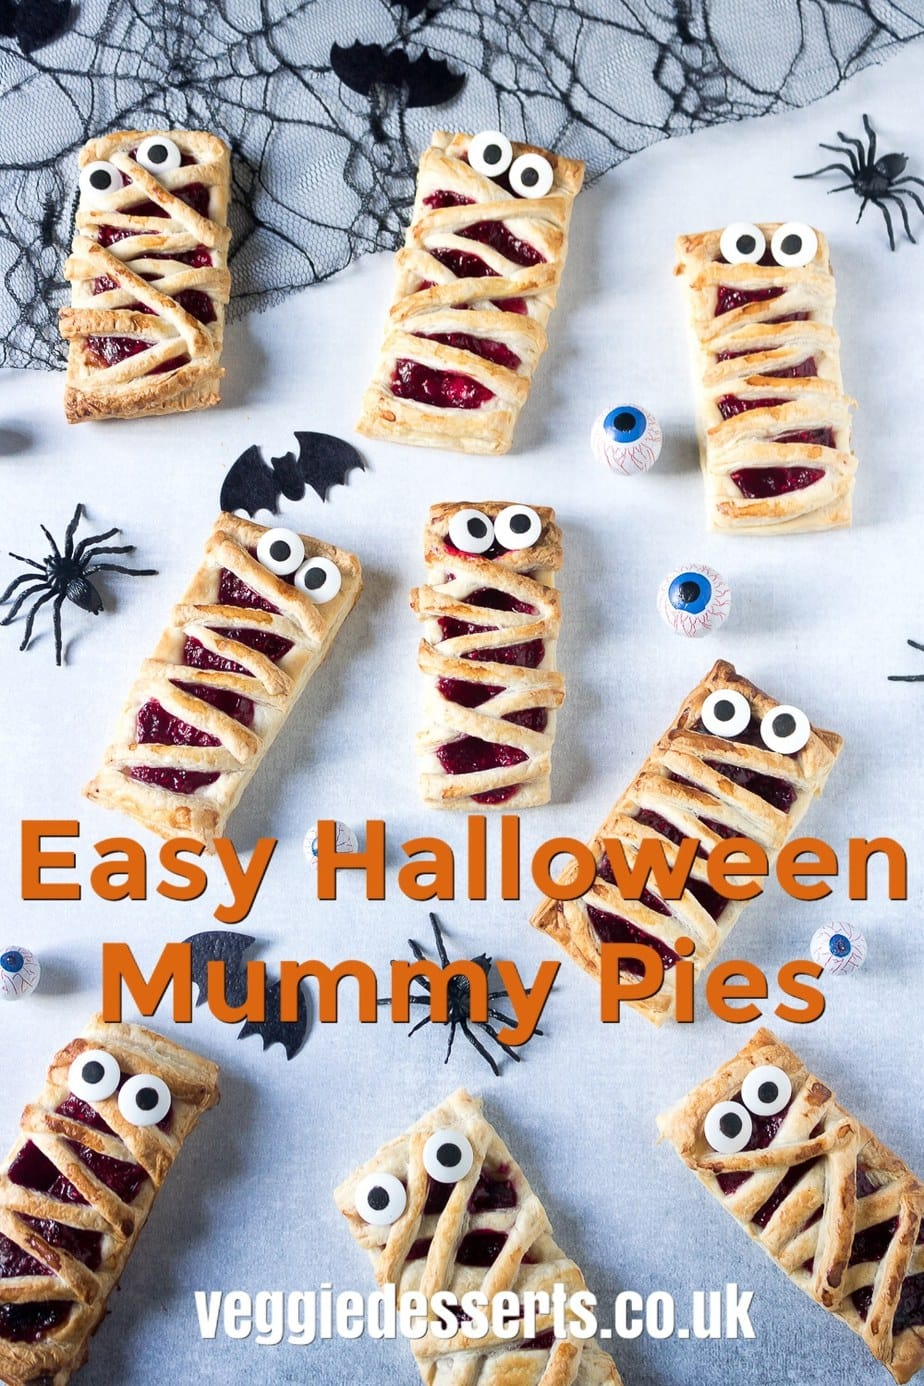 Halloween mummy pies are a fun and easy way to make spooky food! They're easy halloween party food and delicious and made with fresh or frozen raspberries - or even jam to make them super quick and easy. #halloween #halloweenfood #mummypies #handpies #halloweenfood